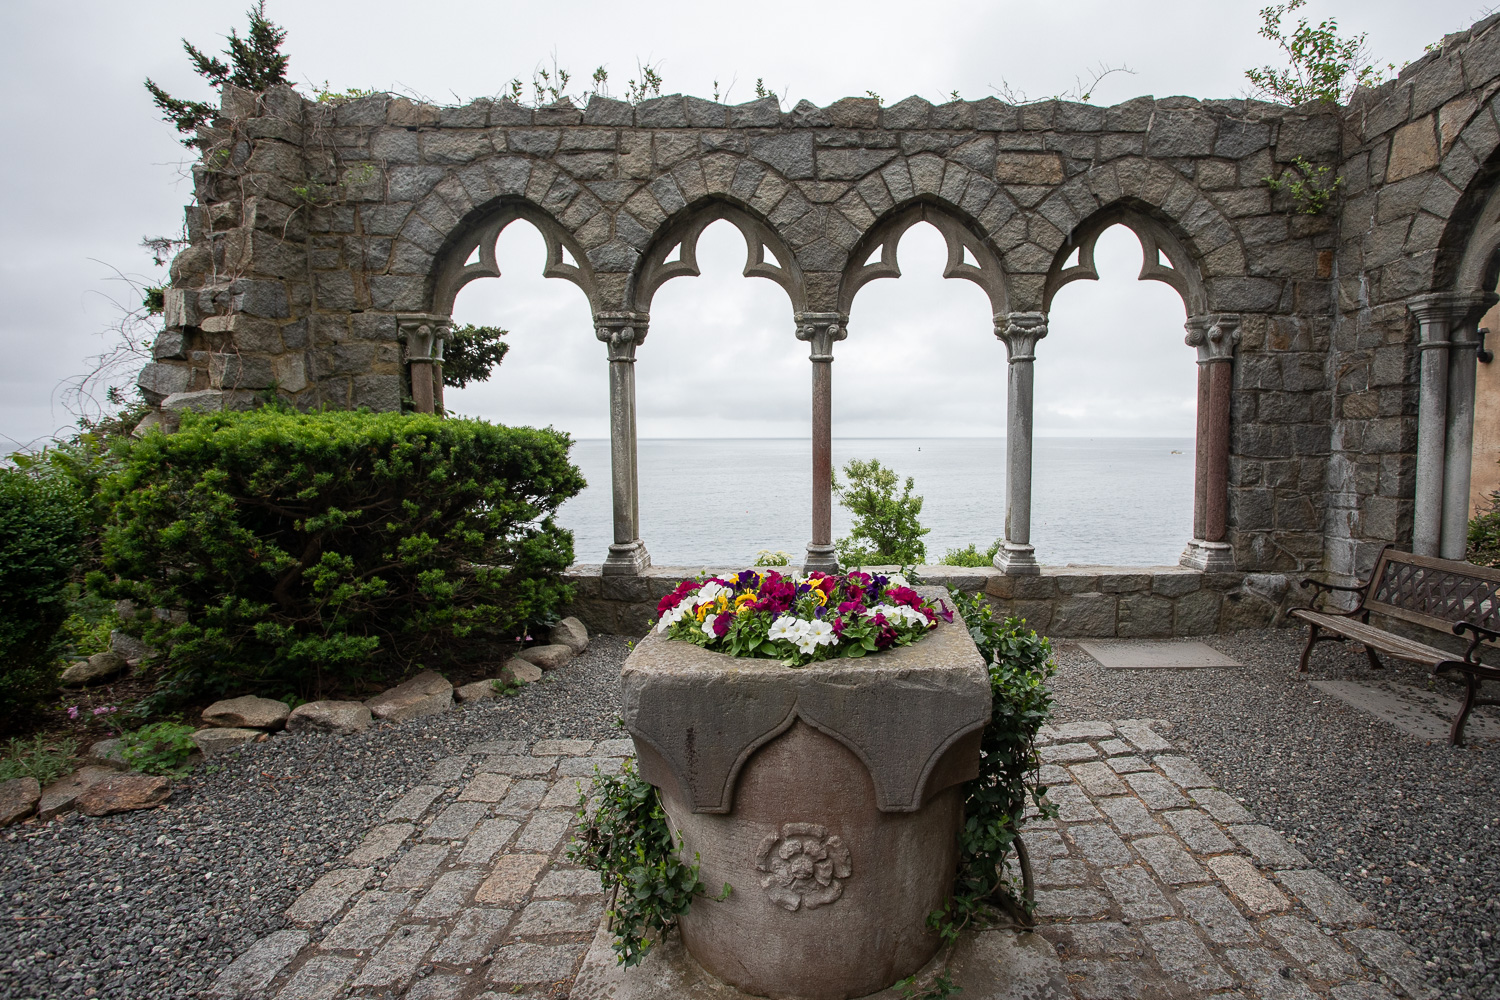 Near the main entrance to Hammond Castle. In the distance is the Atlantic Ocean.